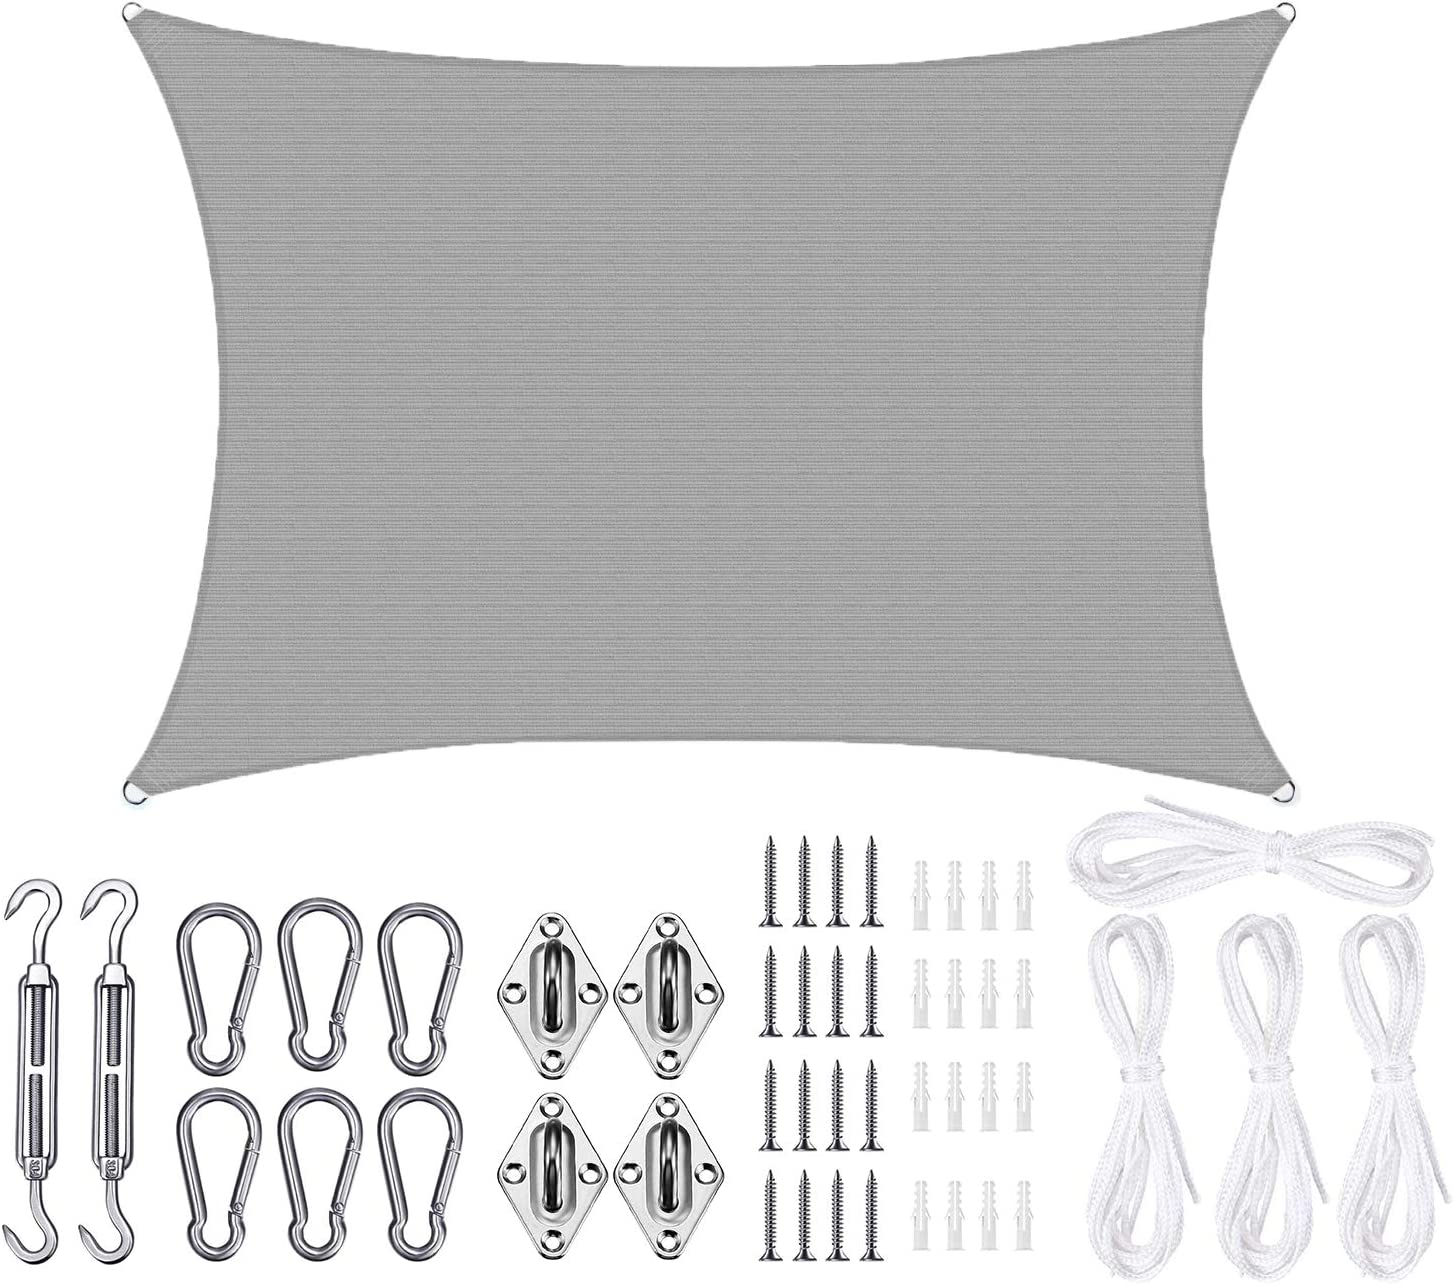 Sposuit 10' x 13' Rectangle Sun Shade Sail with Hardware Kit Set - UV Block Canopy Shade Cover for Deck Patio Pool Yard Garden Outside, UV-Resistant, Grey